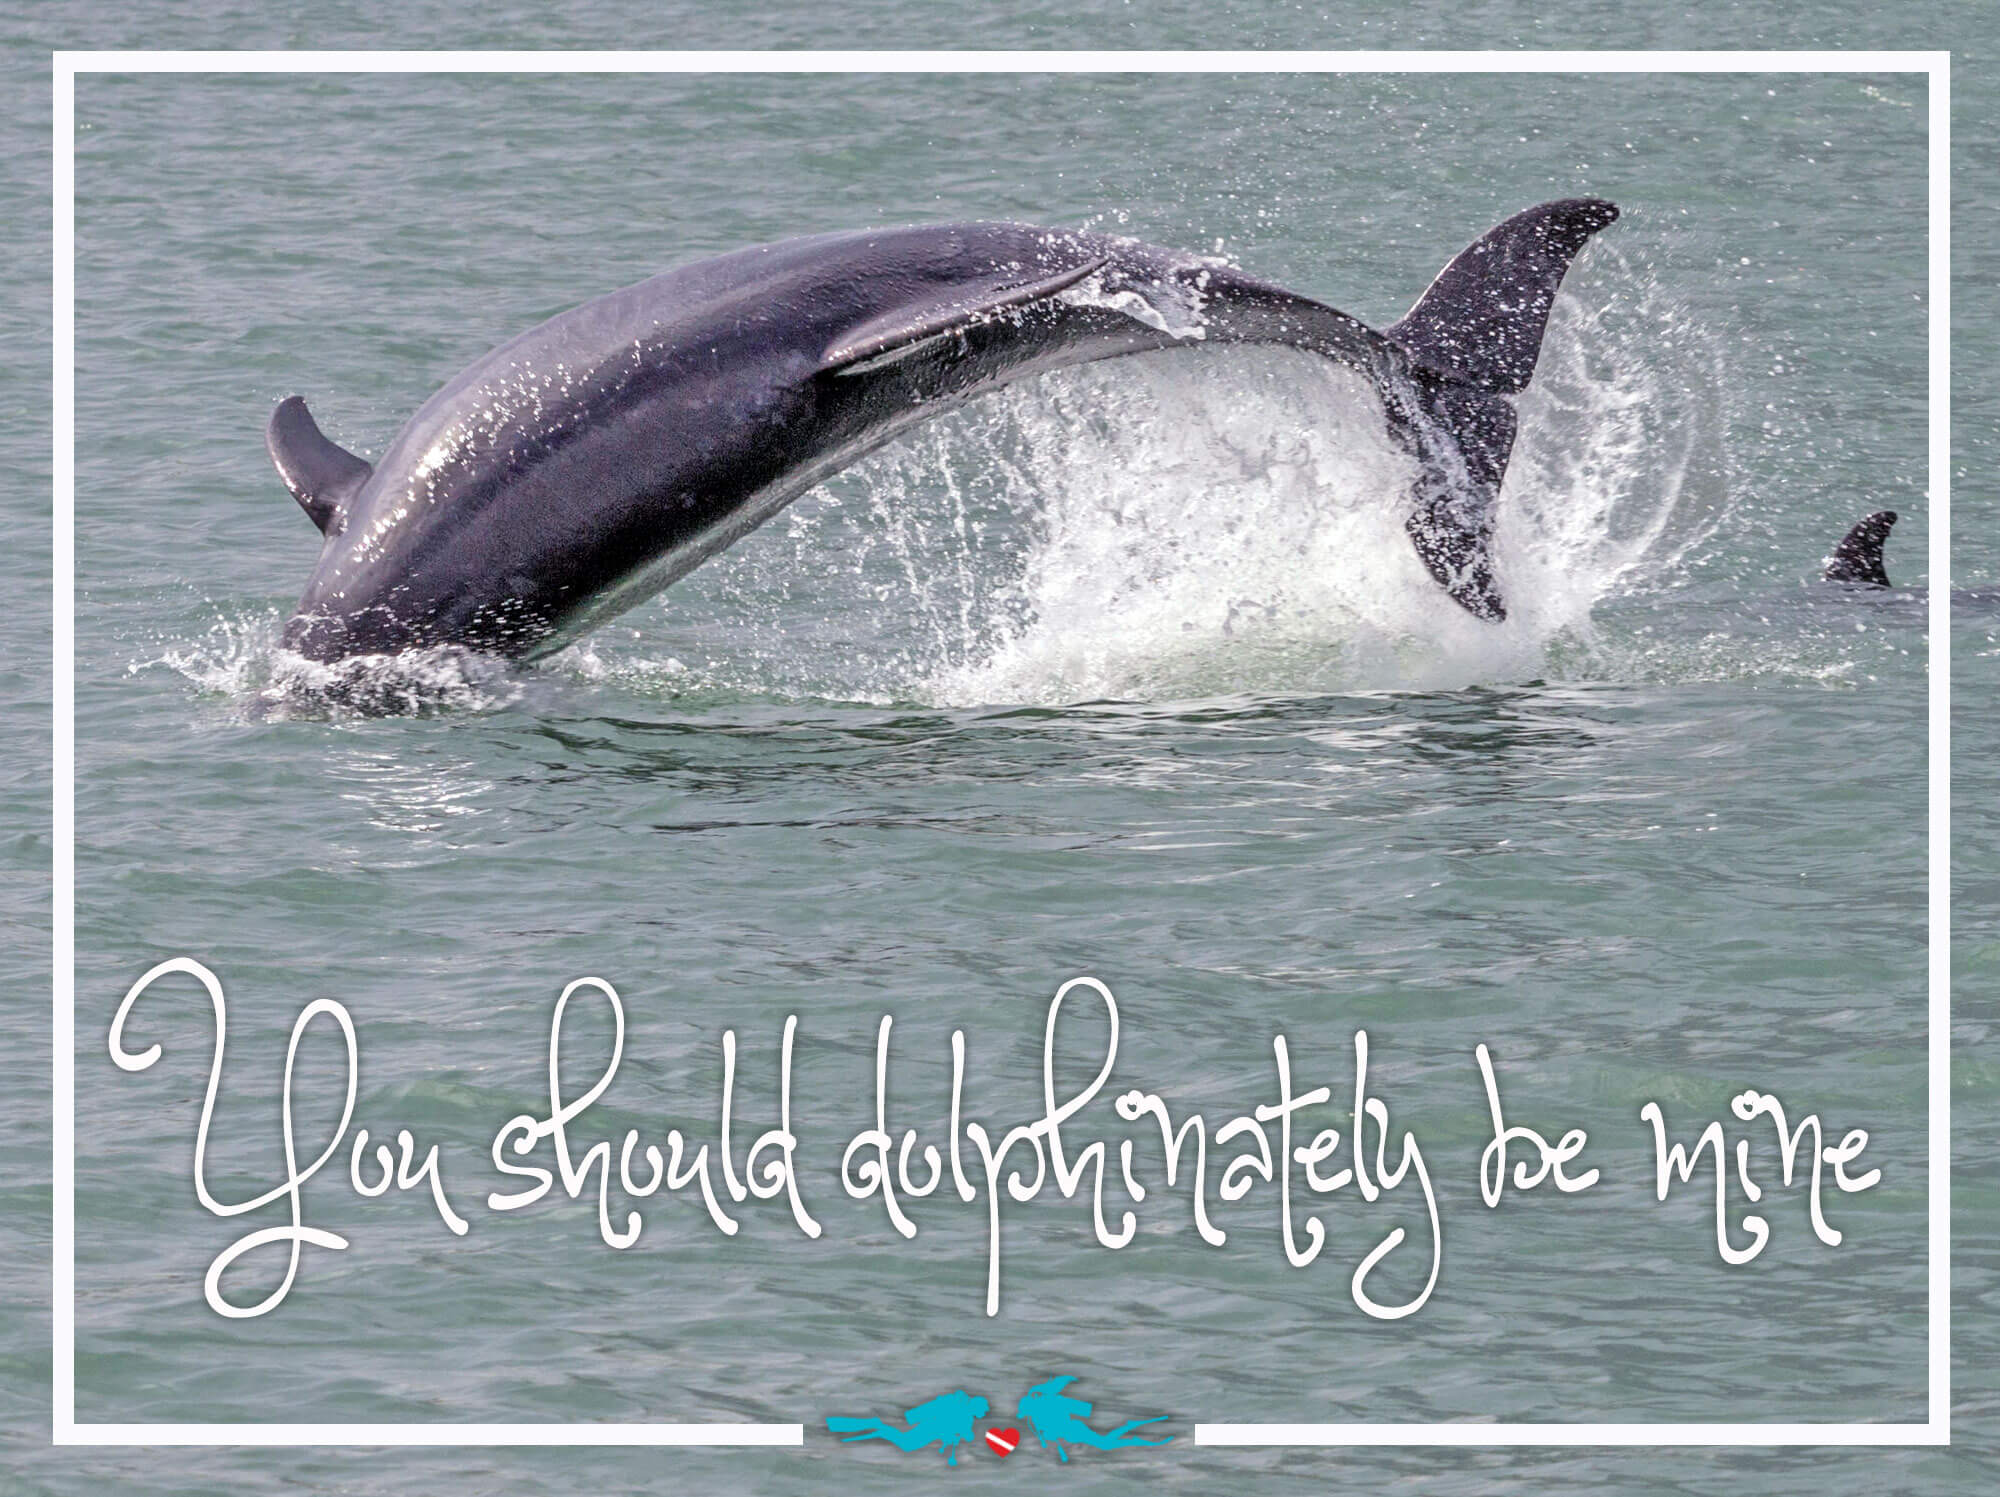 Dolphin Scuba Diving Valentine's Day Quote